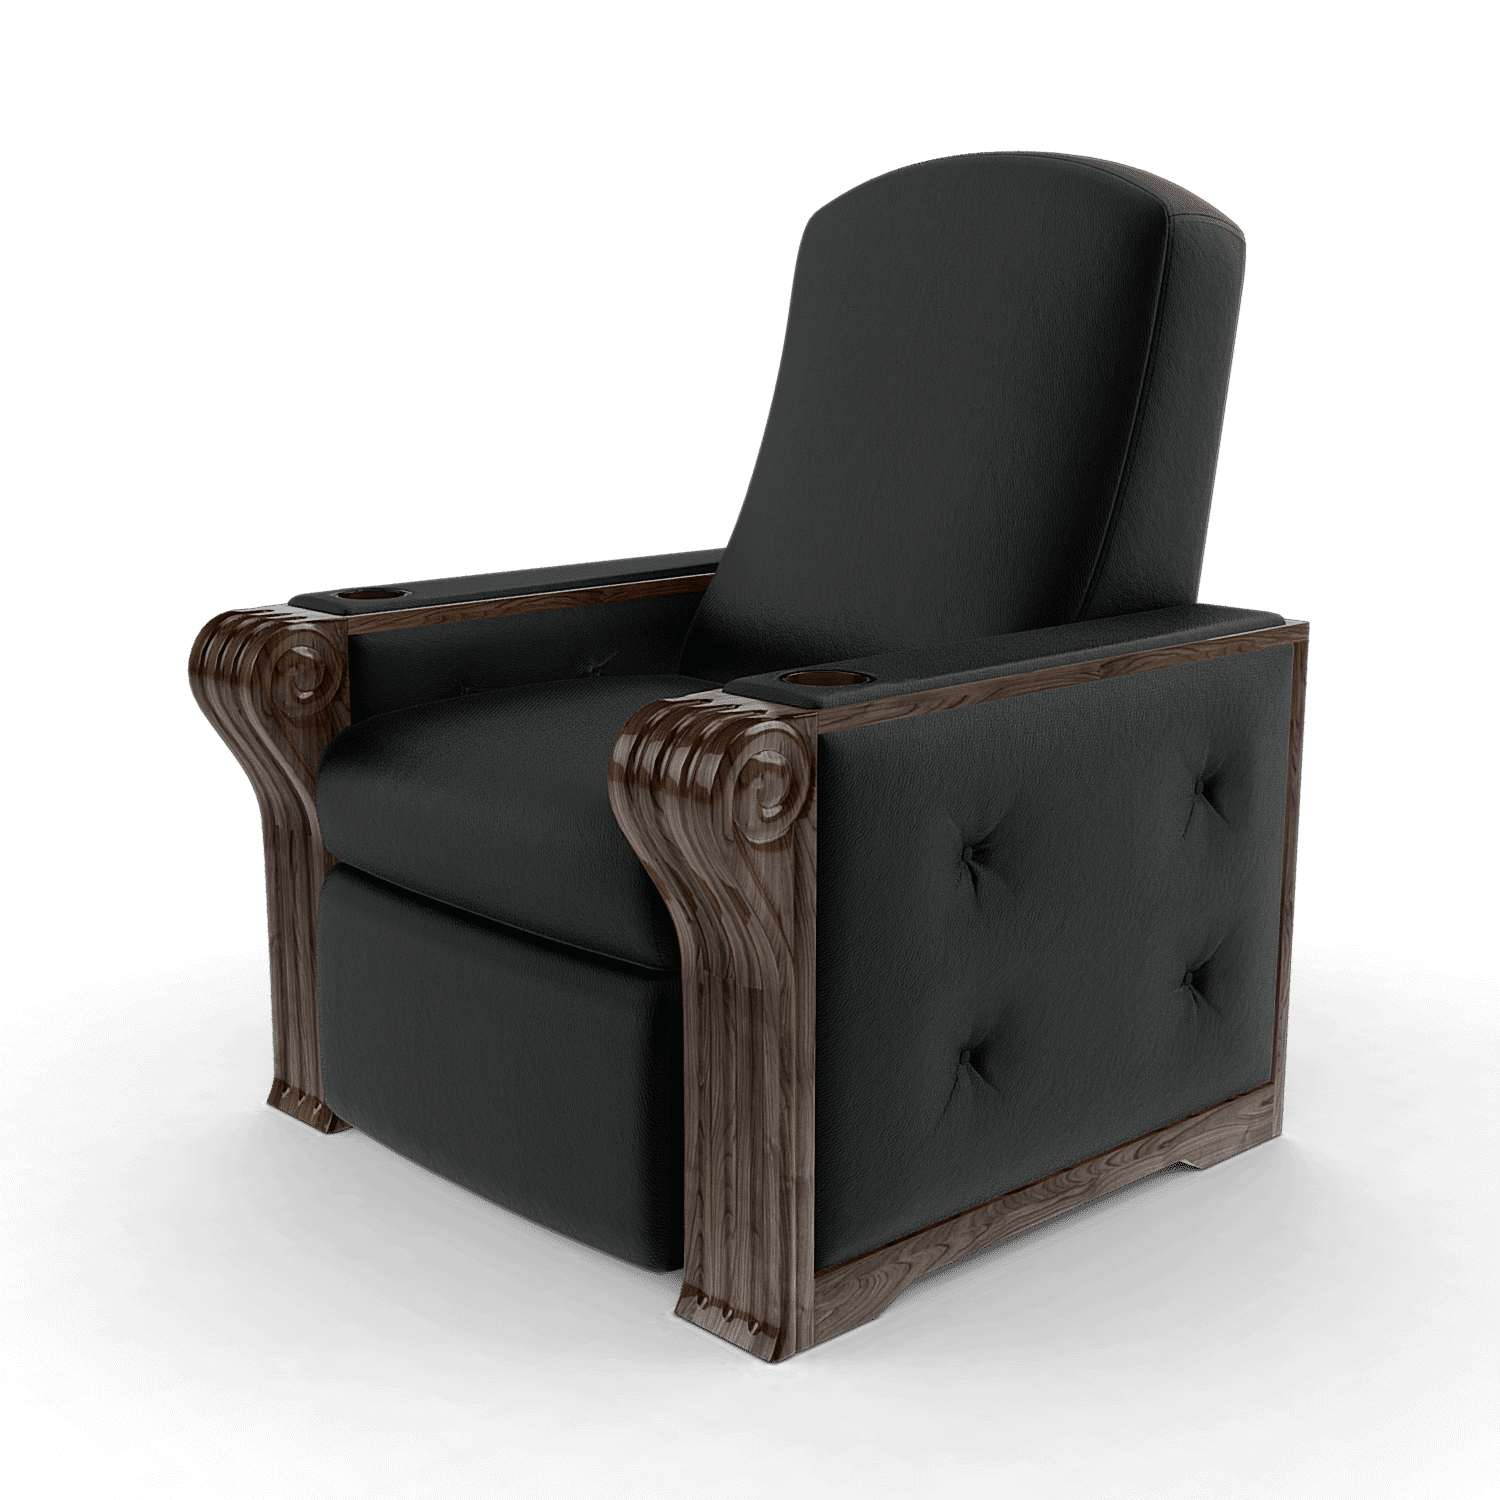 Home theater chair Elite HTS image s5_black_home_theater_chairs (1) (1)